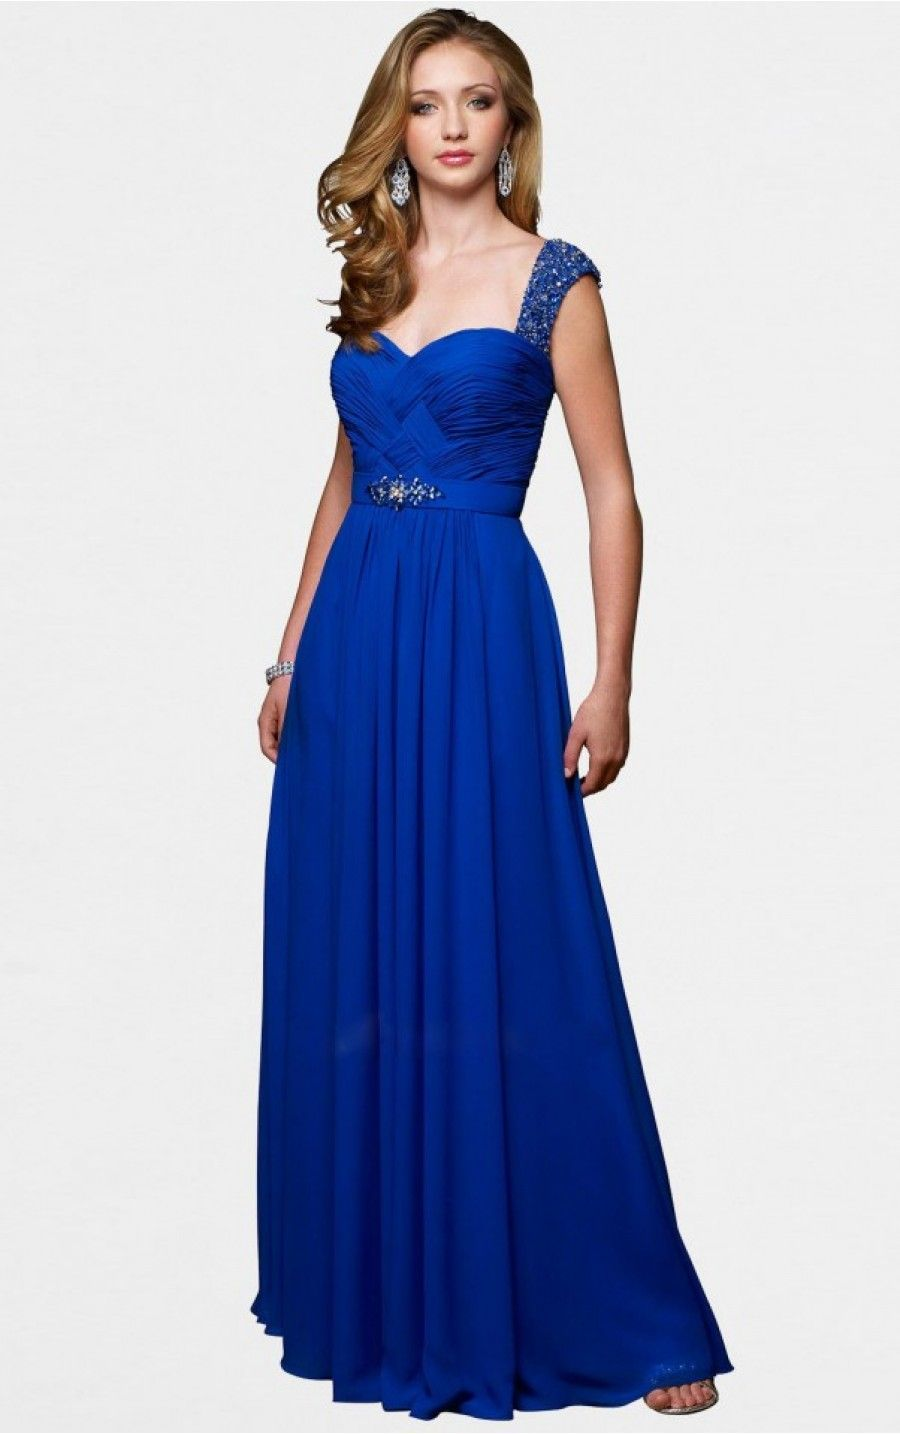 bridesmaid dresses in royal blue zealand